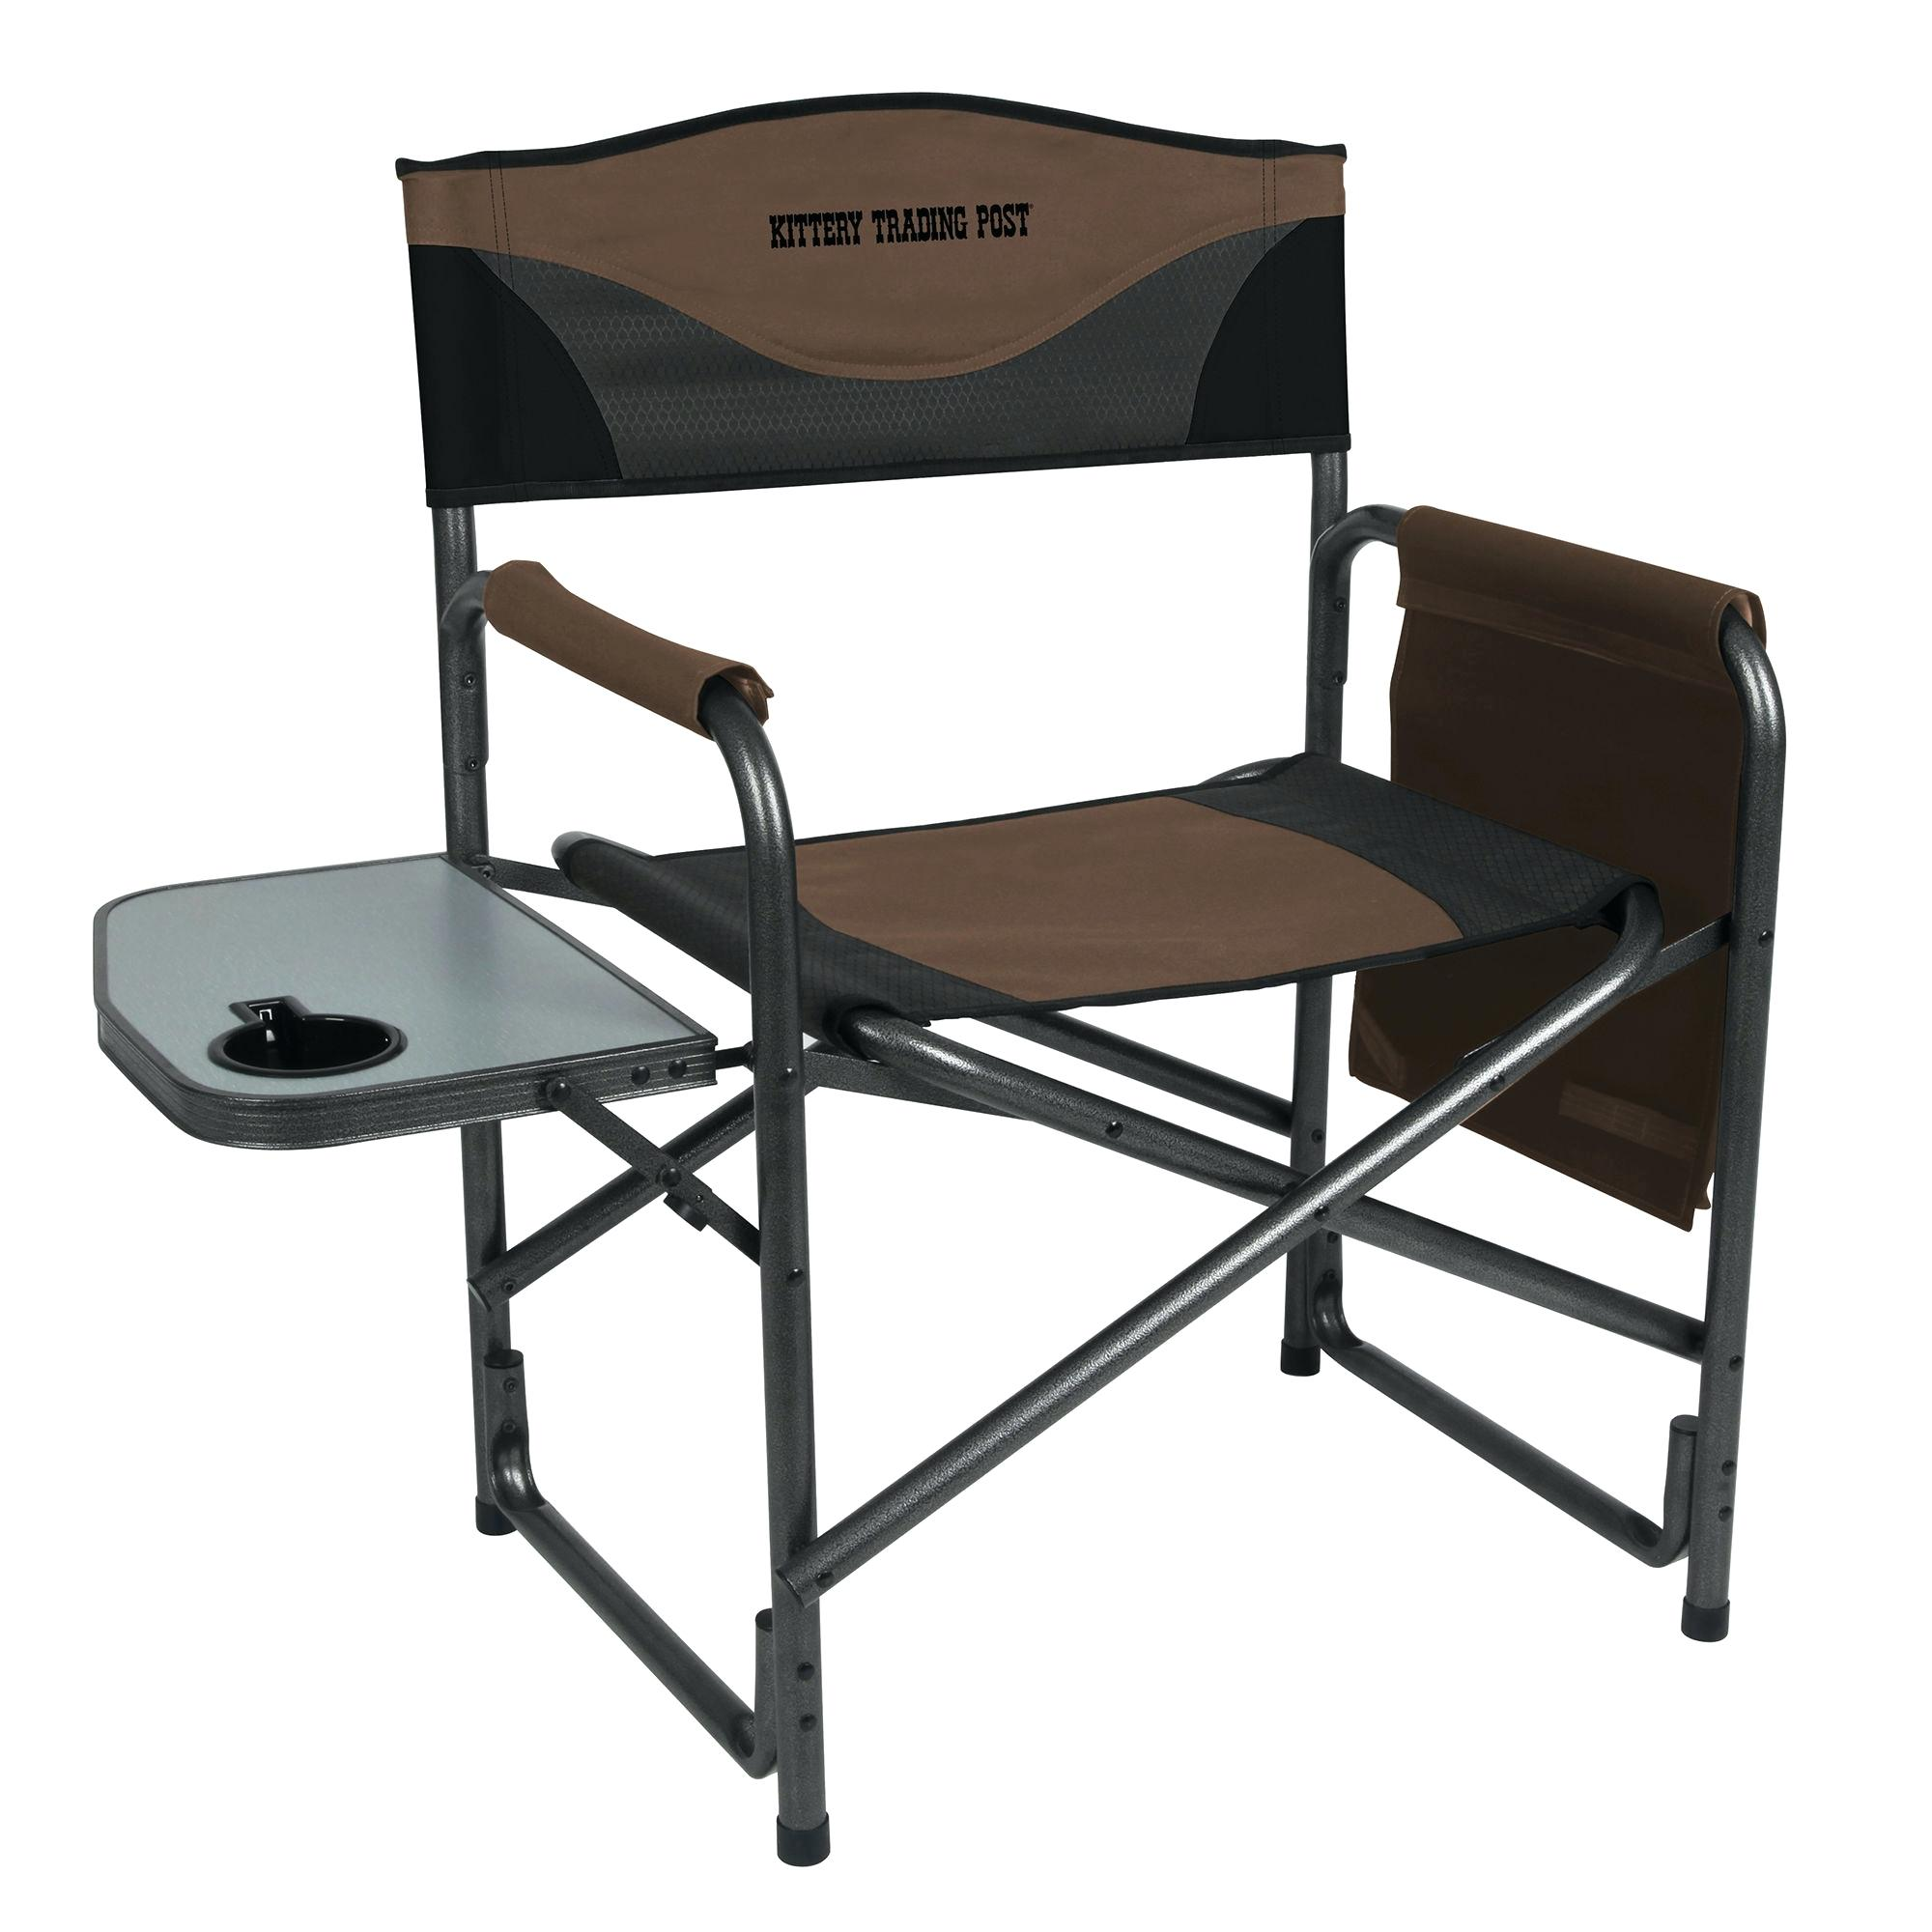 director chair directors with side table and cooler craftycow portal aluminum trading post logo folding outdoor lawn chairs thin coffee kids reading nook hall console accent